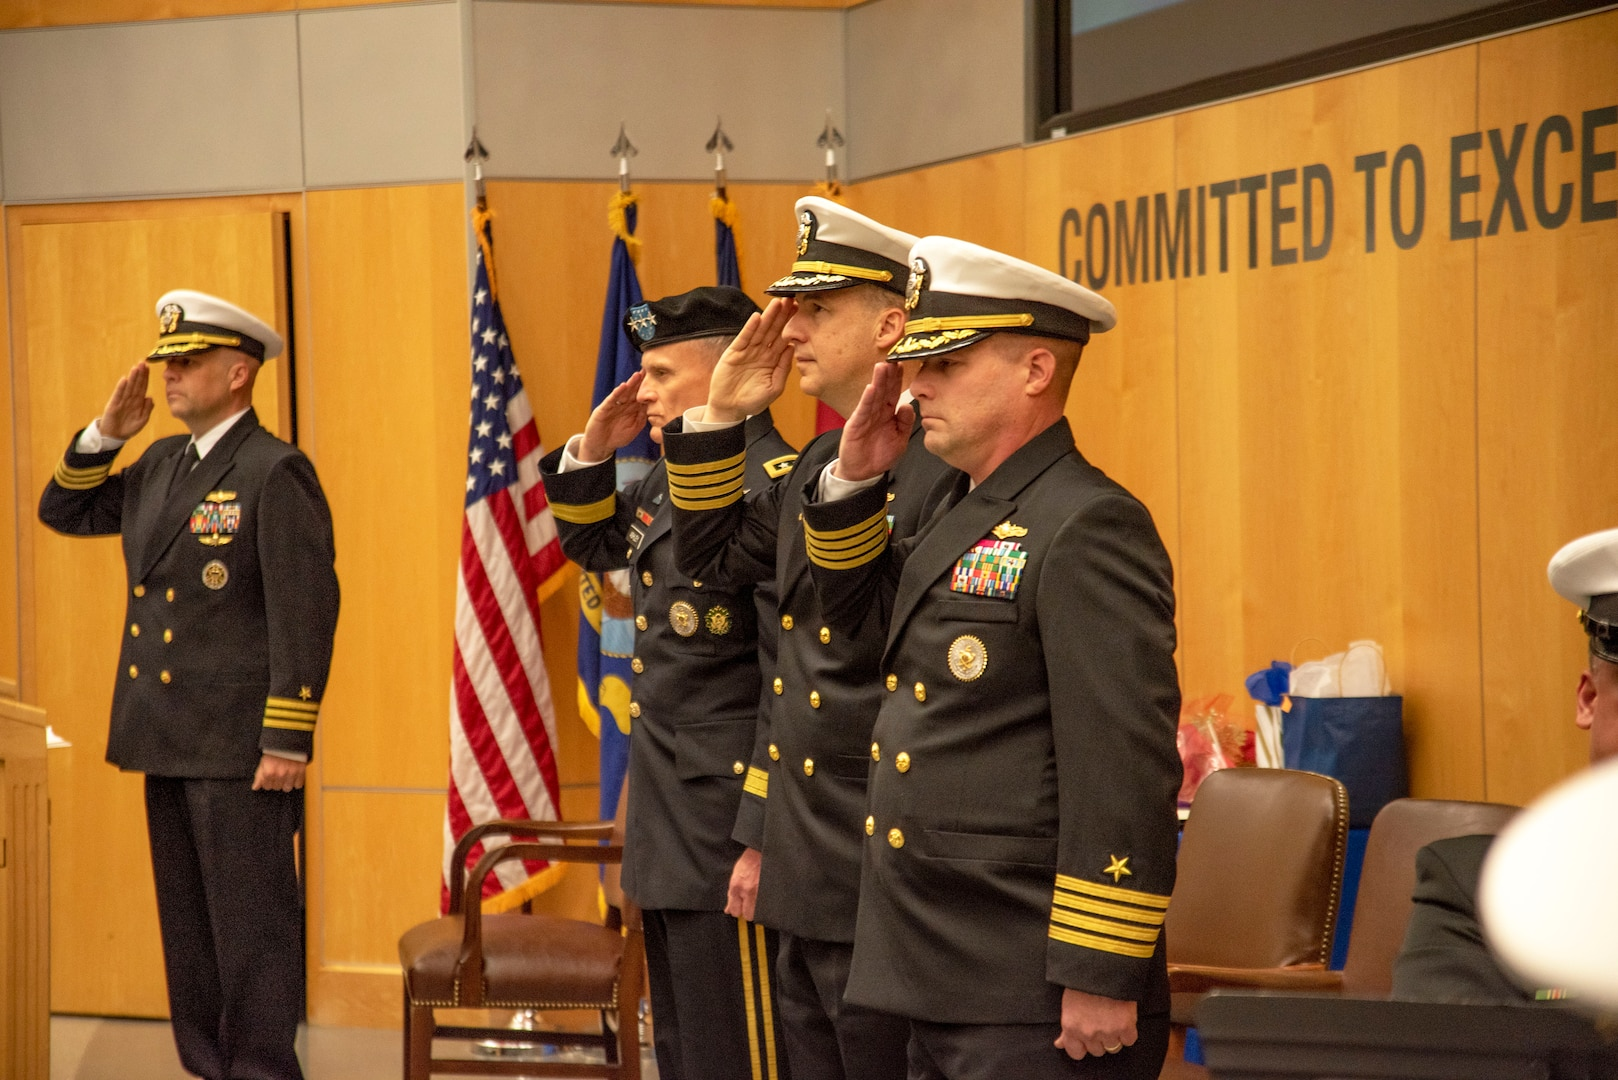 Defense Intelligence Agency Director Lt. Gen. Robert P. Ashley,. Jr., second from left, outgoing Defense Intelligence Agency Navy Element Commander Capt. Joshua C. Himes, second from right, and incoming Navy Element commander, Capt. Peter N. Shepard, right, salute during a change of command ceremony, Jan. 30, at the DIA headquarters on Joint Base Anacostia-Bolling.